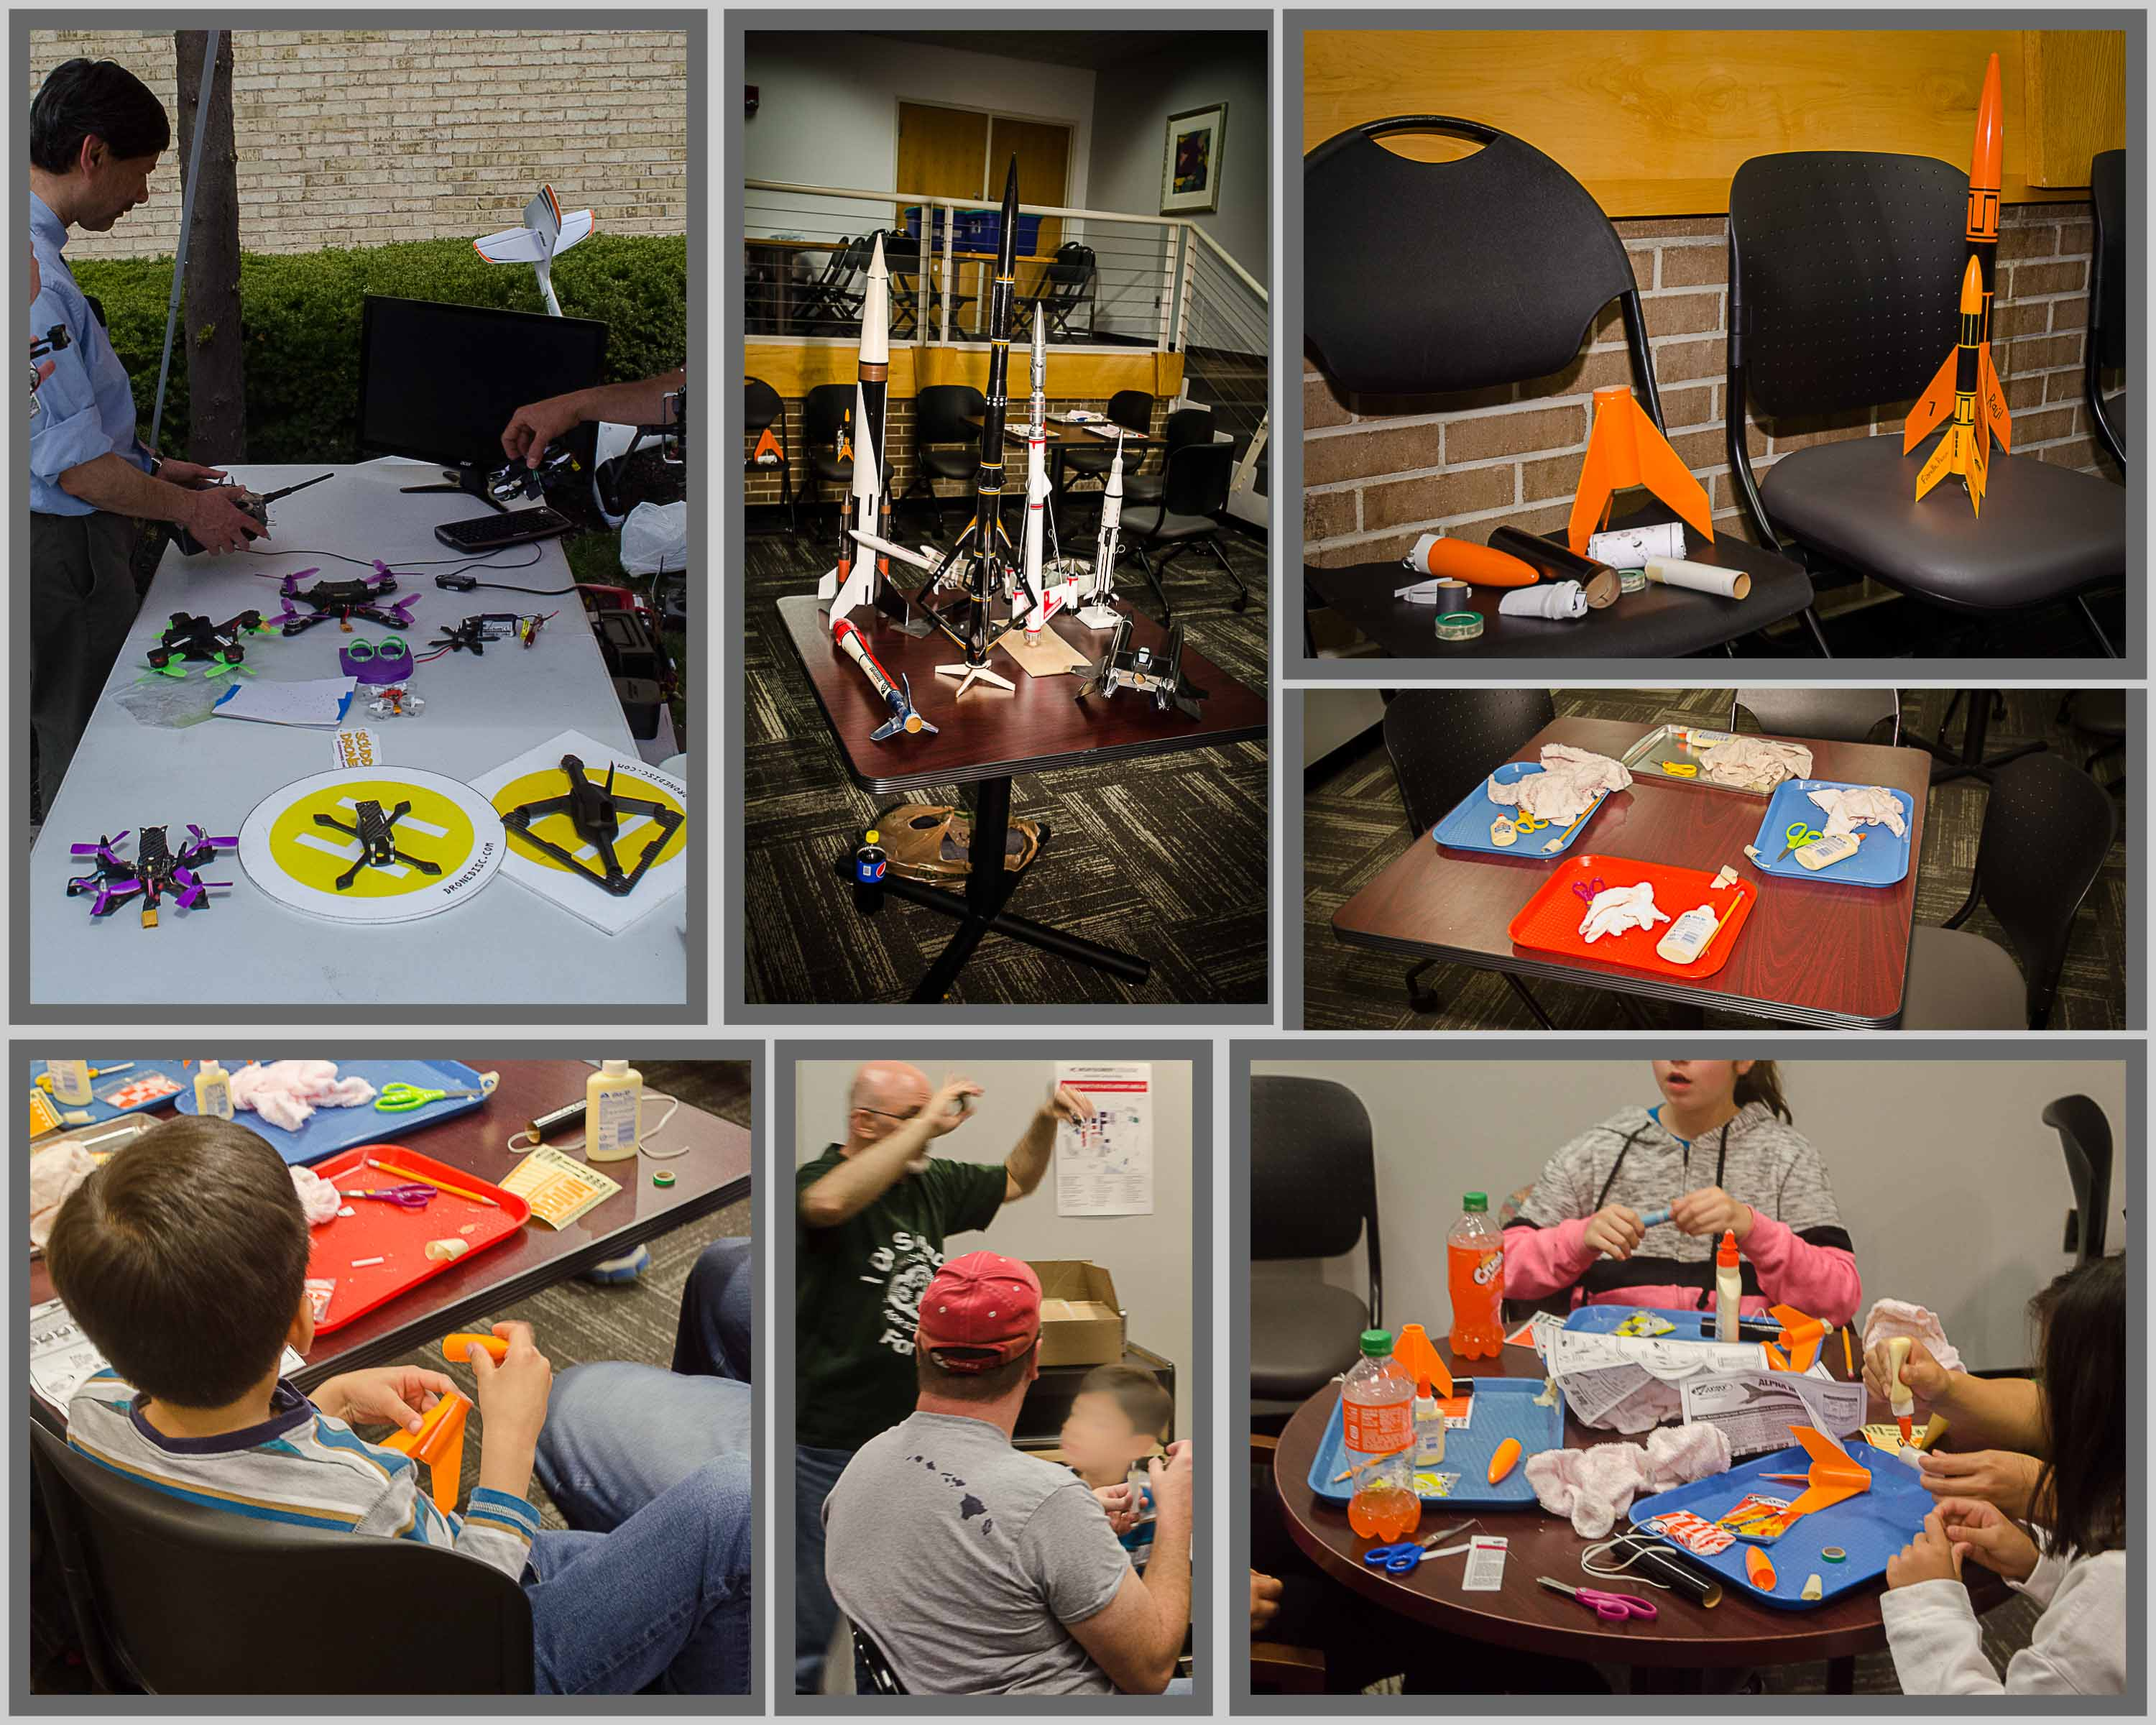 Collage of pictures of STEM of rocketry and flying drones.